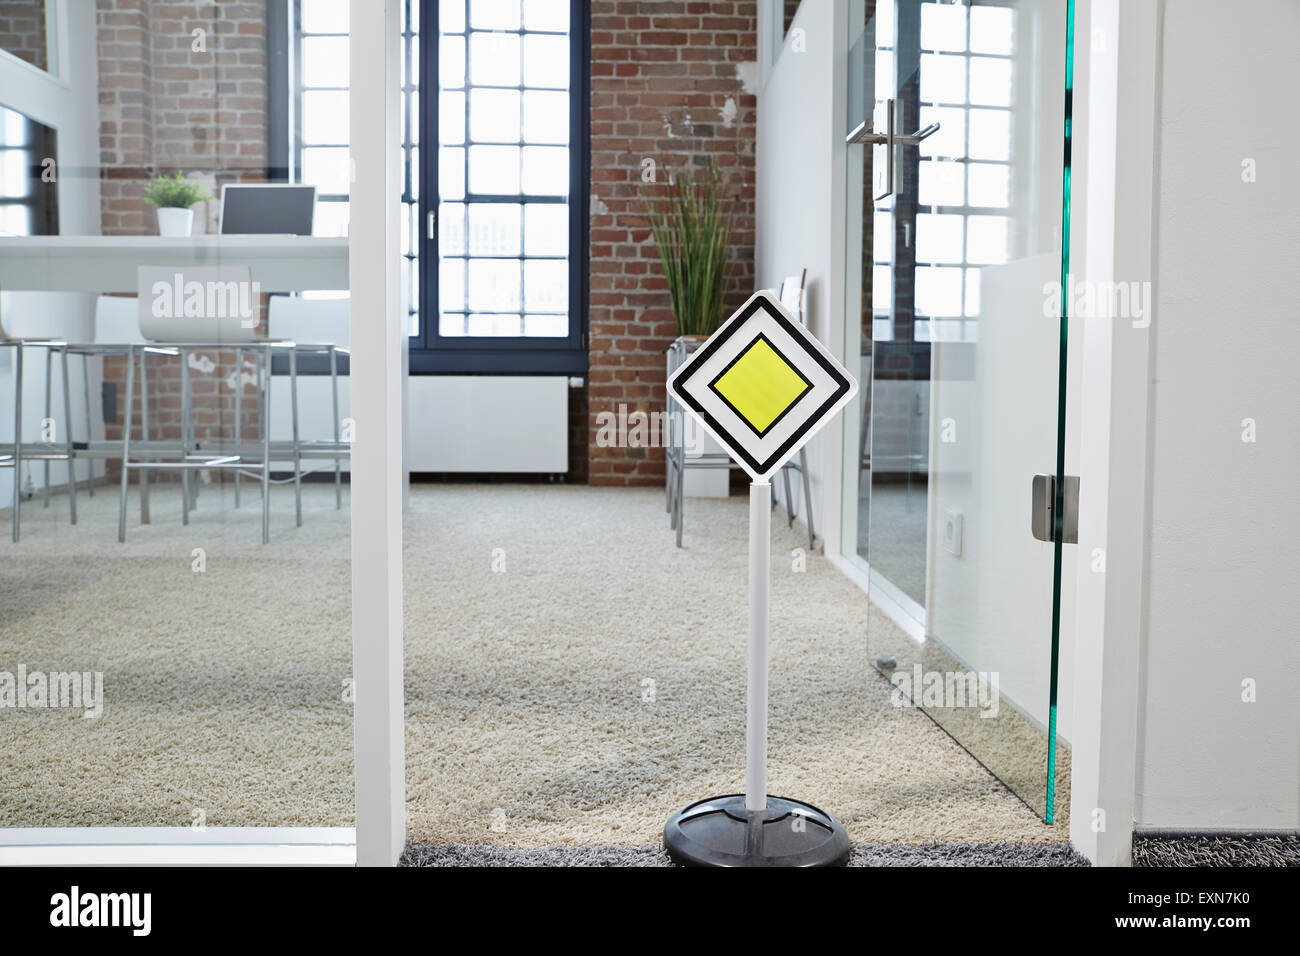 Right of way sign in modern open plan office - Stock Image